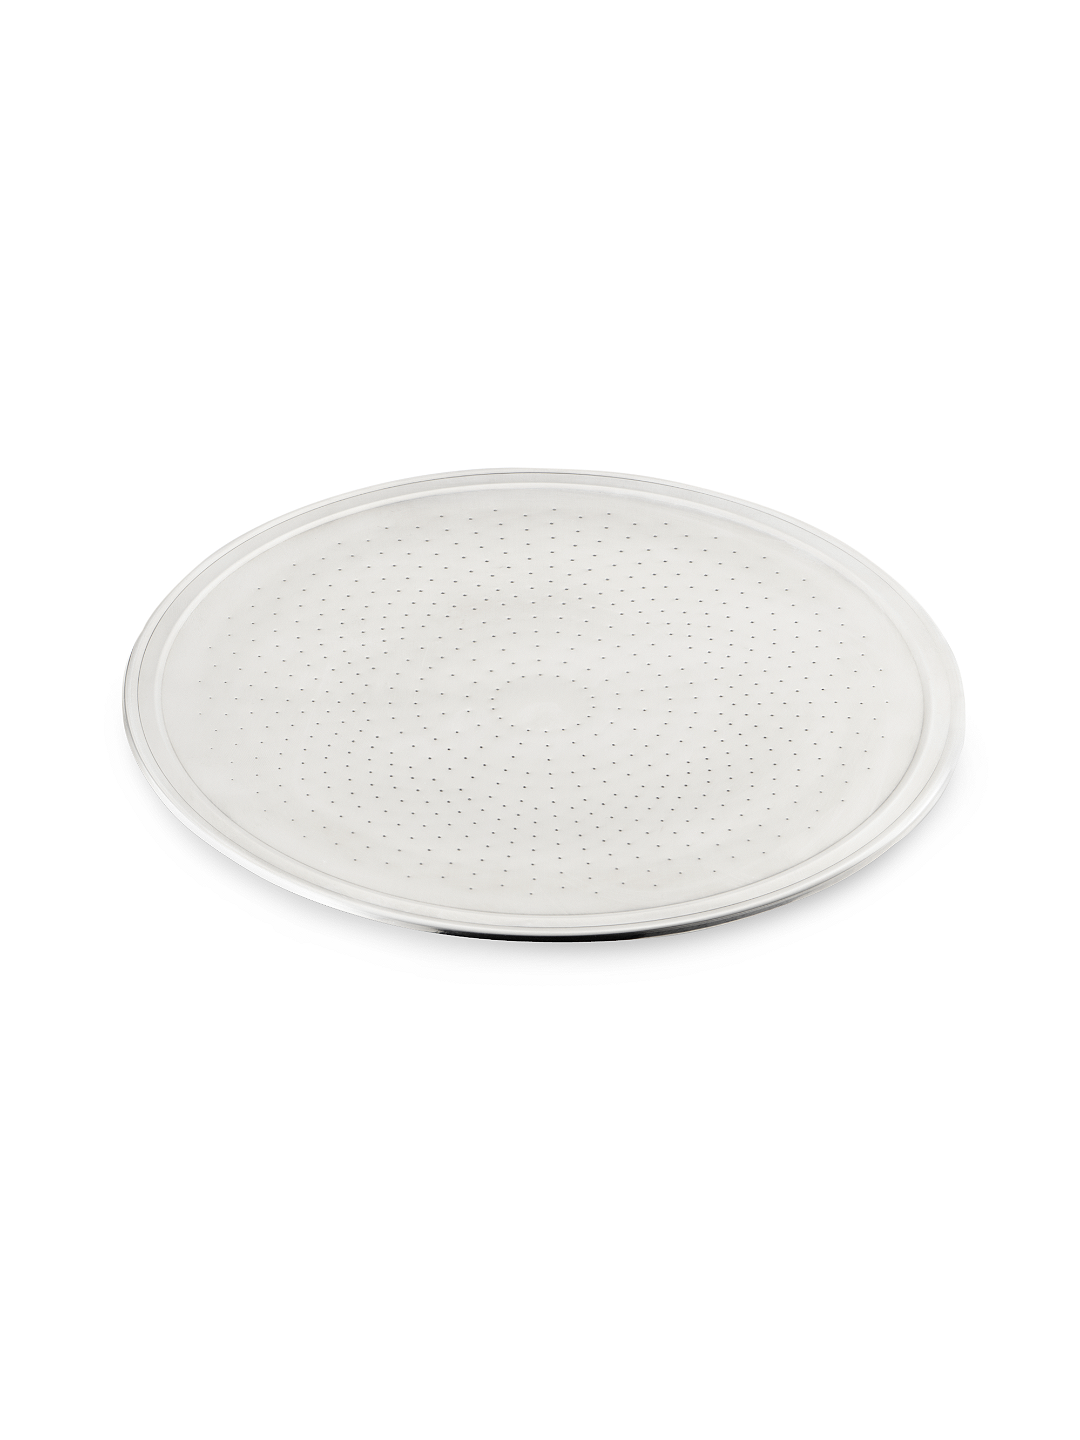 Oggi Thermal Serving Tray